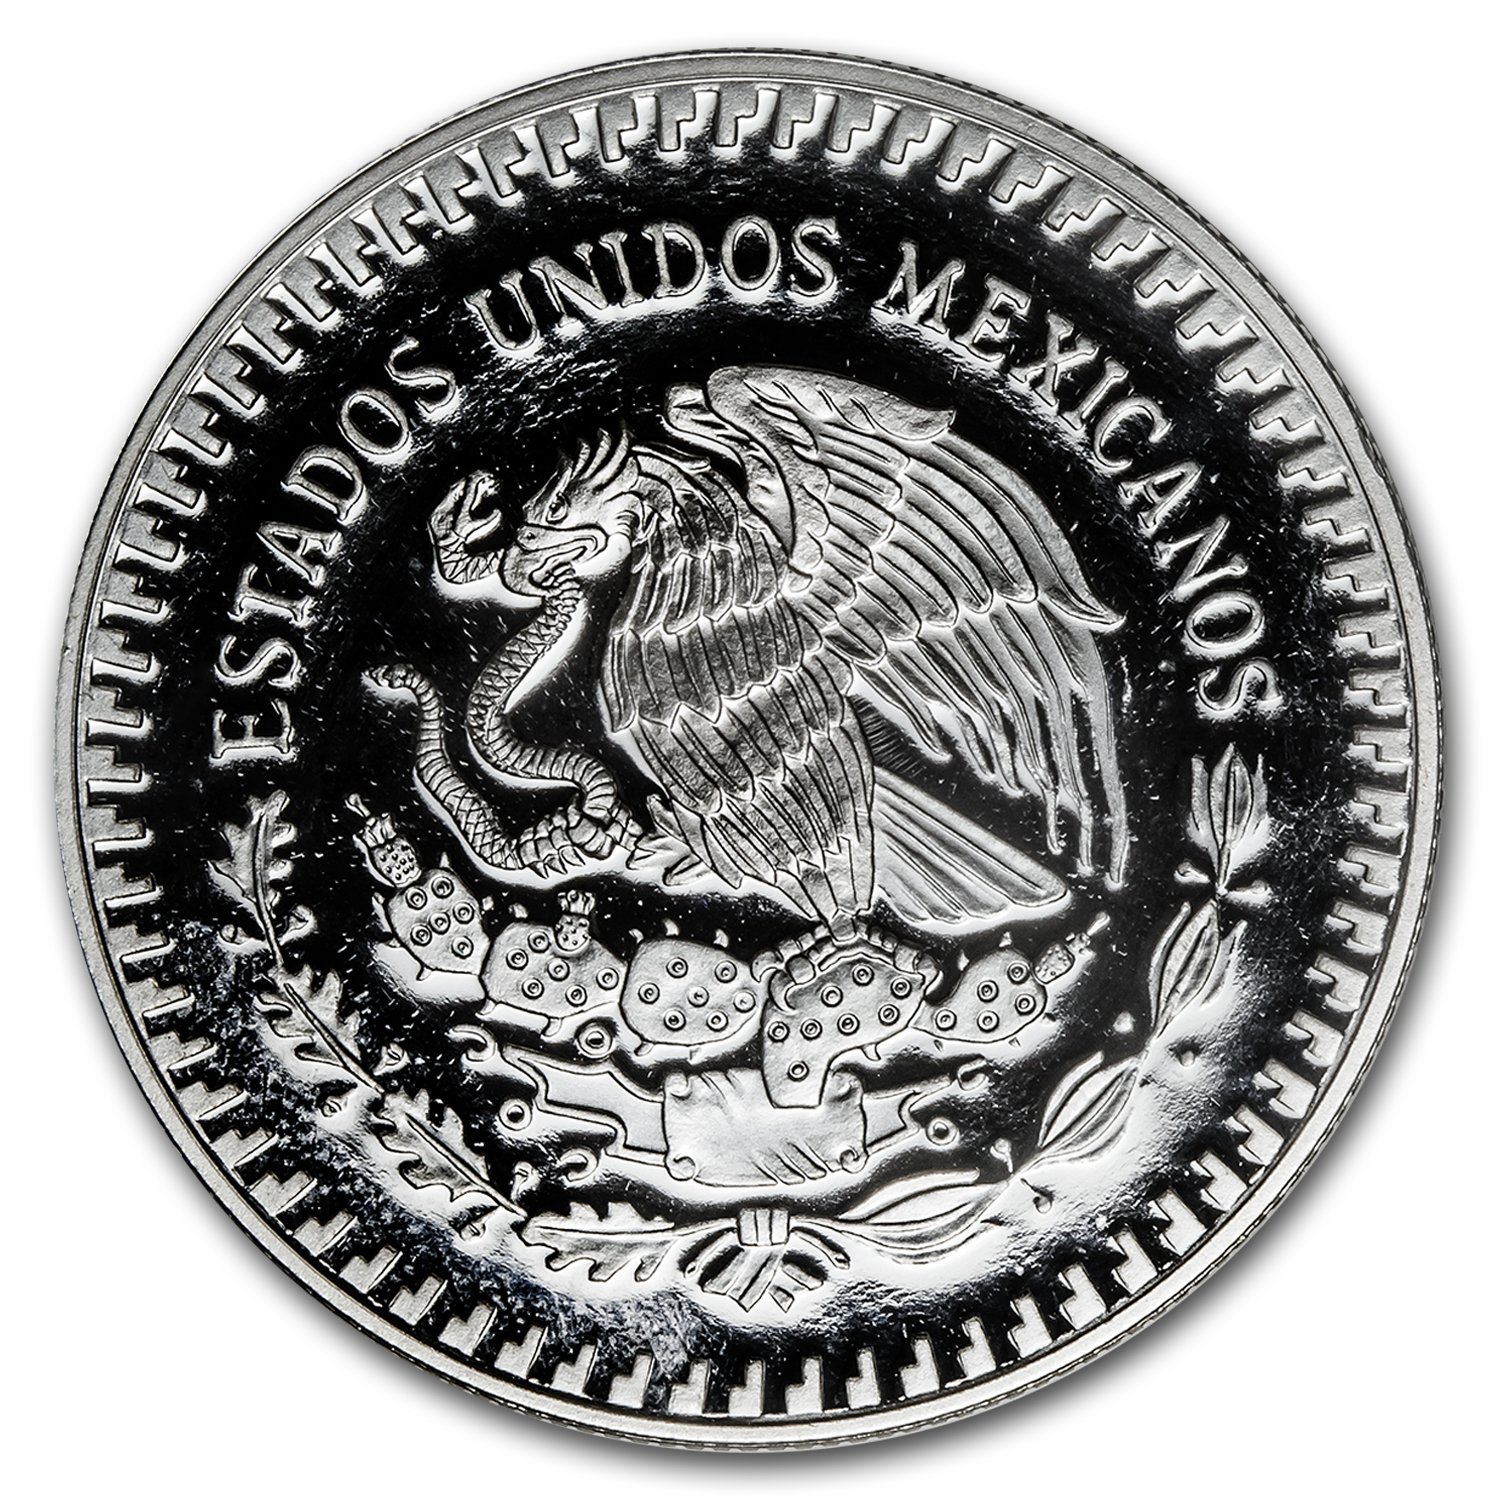 1991 Mexico 1 oz Silver Libertad Proof (In Capsule)